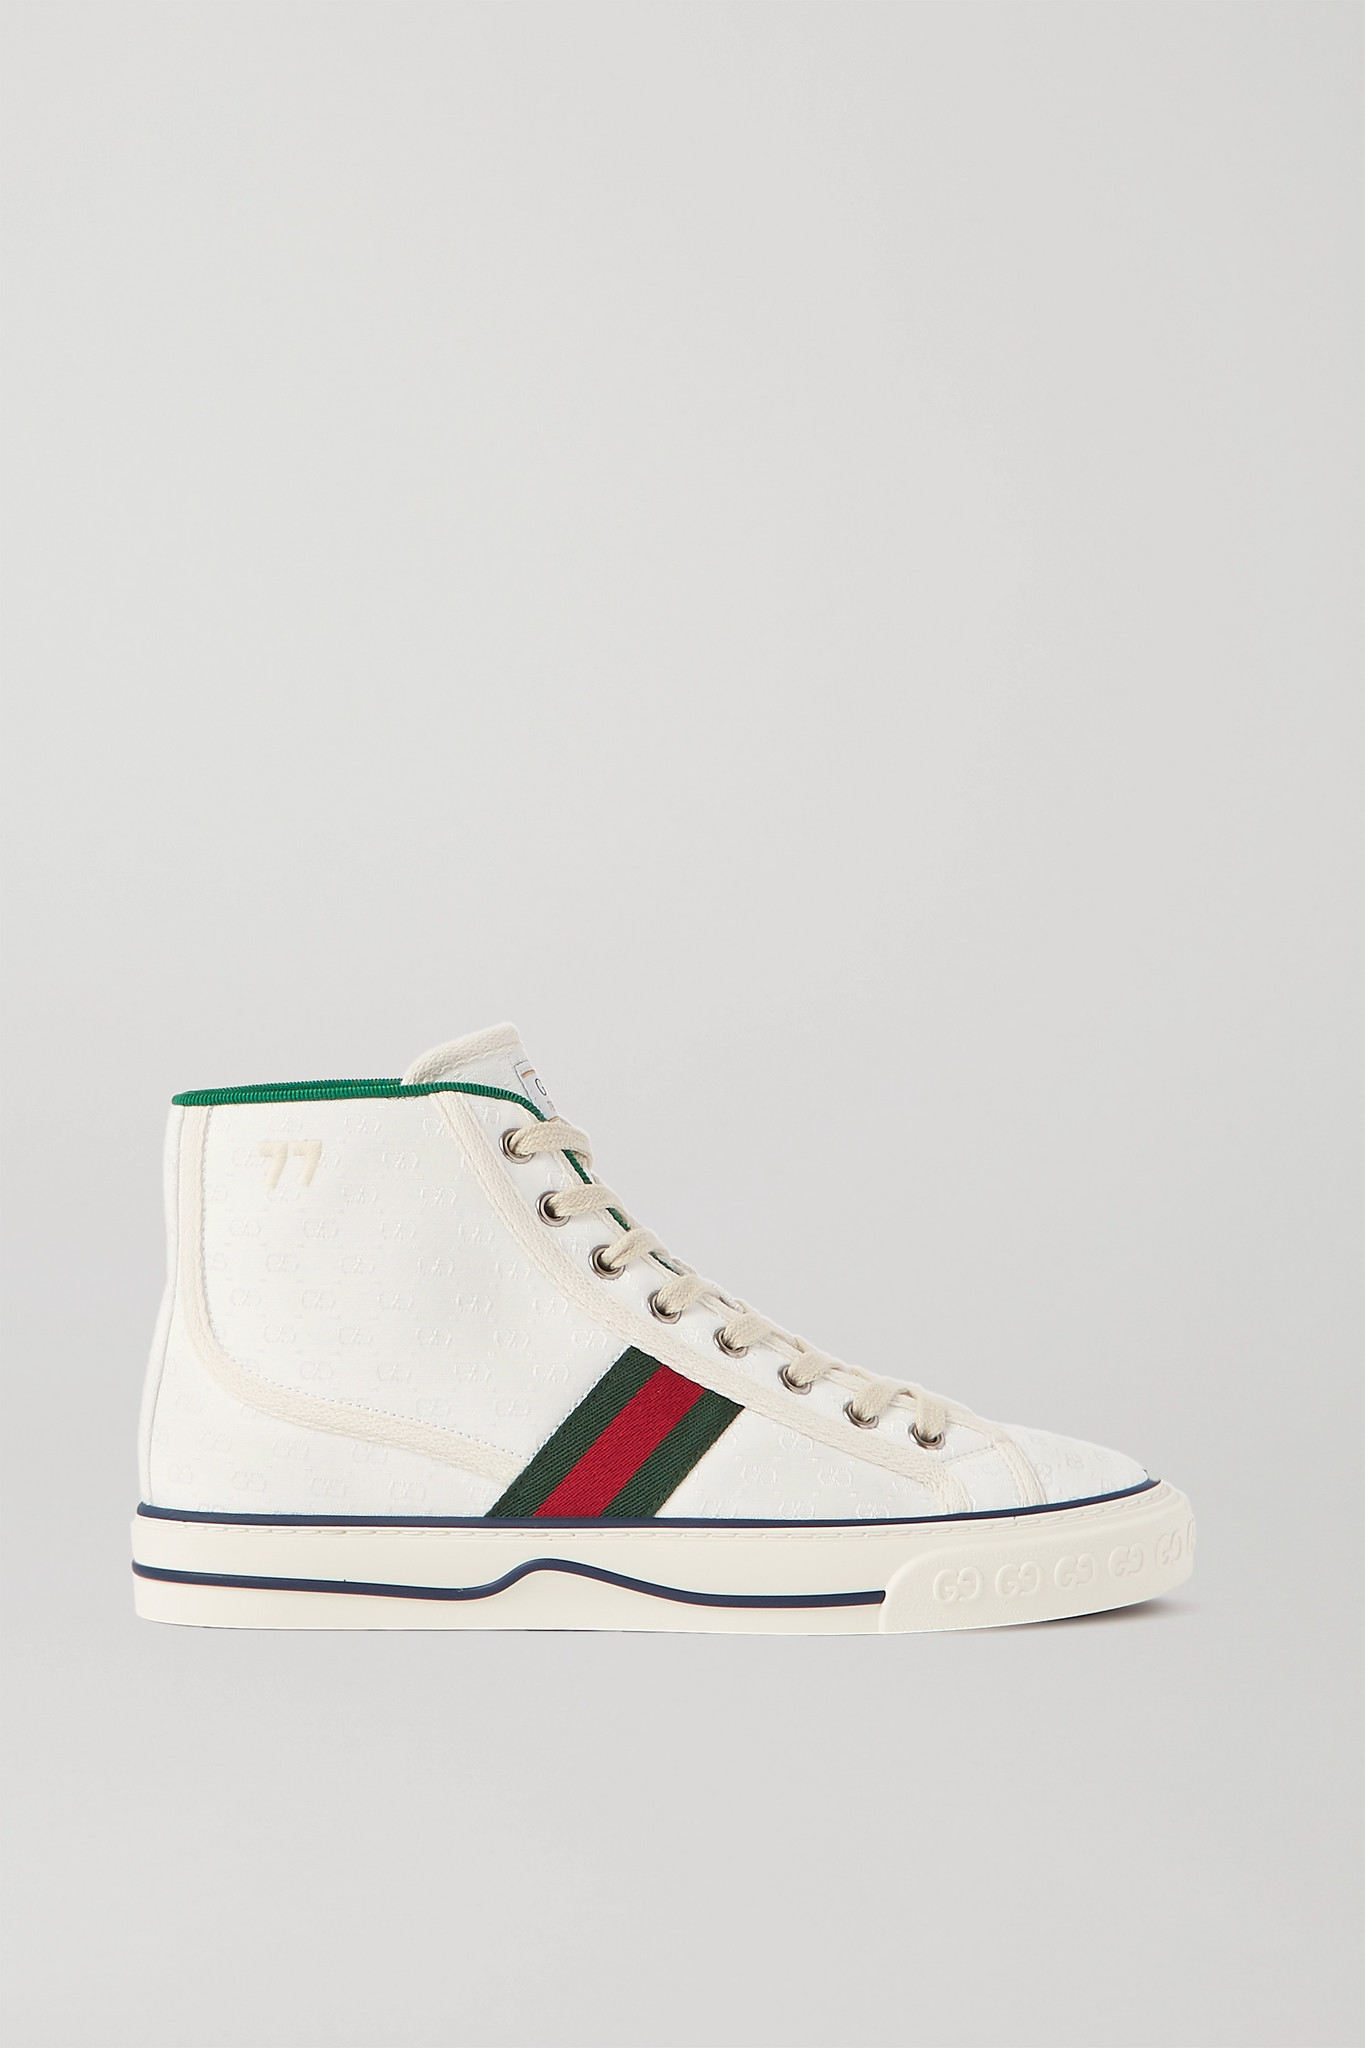 GUCCI - Tennis 1977 Logo-embroidered Printed Canvas High-top Sneakers - White - IT35.5